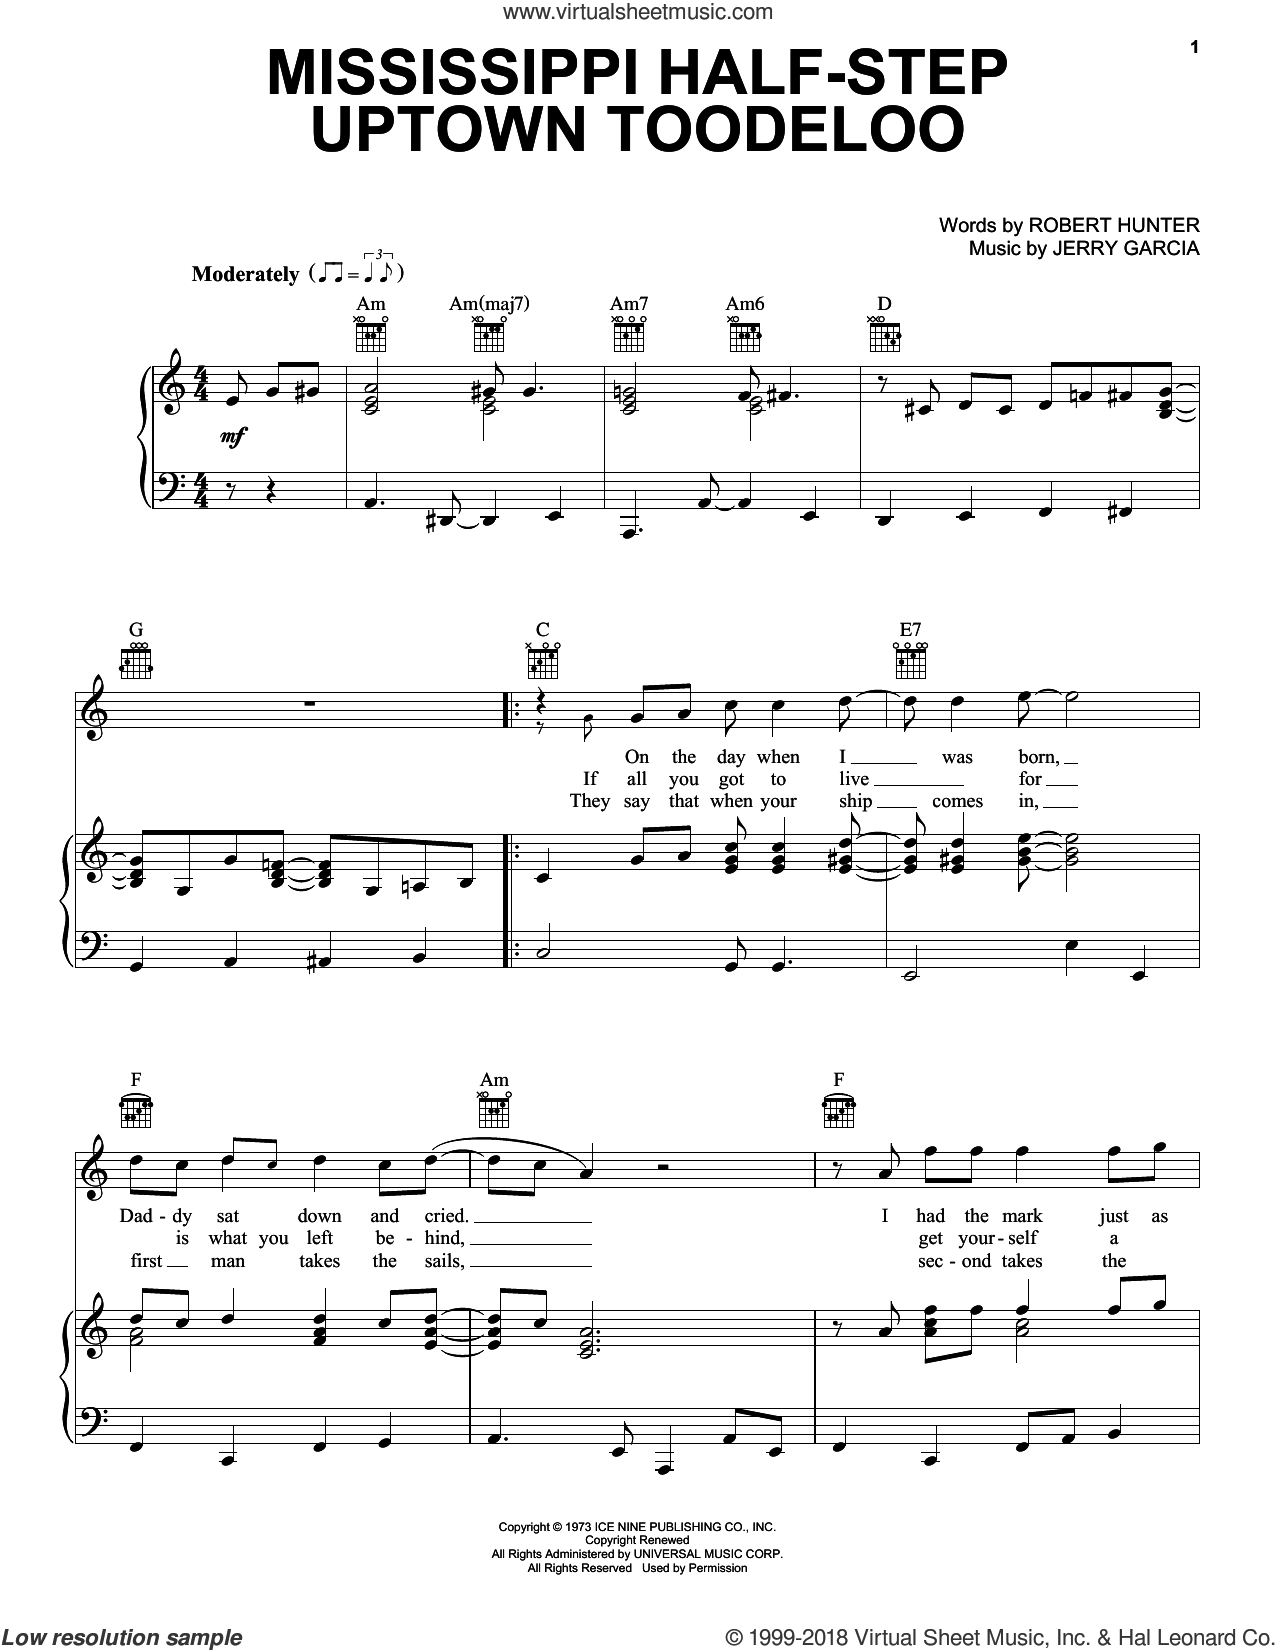 Mississippi Half-Step Uptown Toodeloo sheet music for voice, piano or guitar by Robert Hunter and Grateful Dead. Score Image Preview.